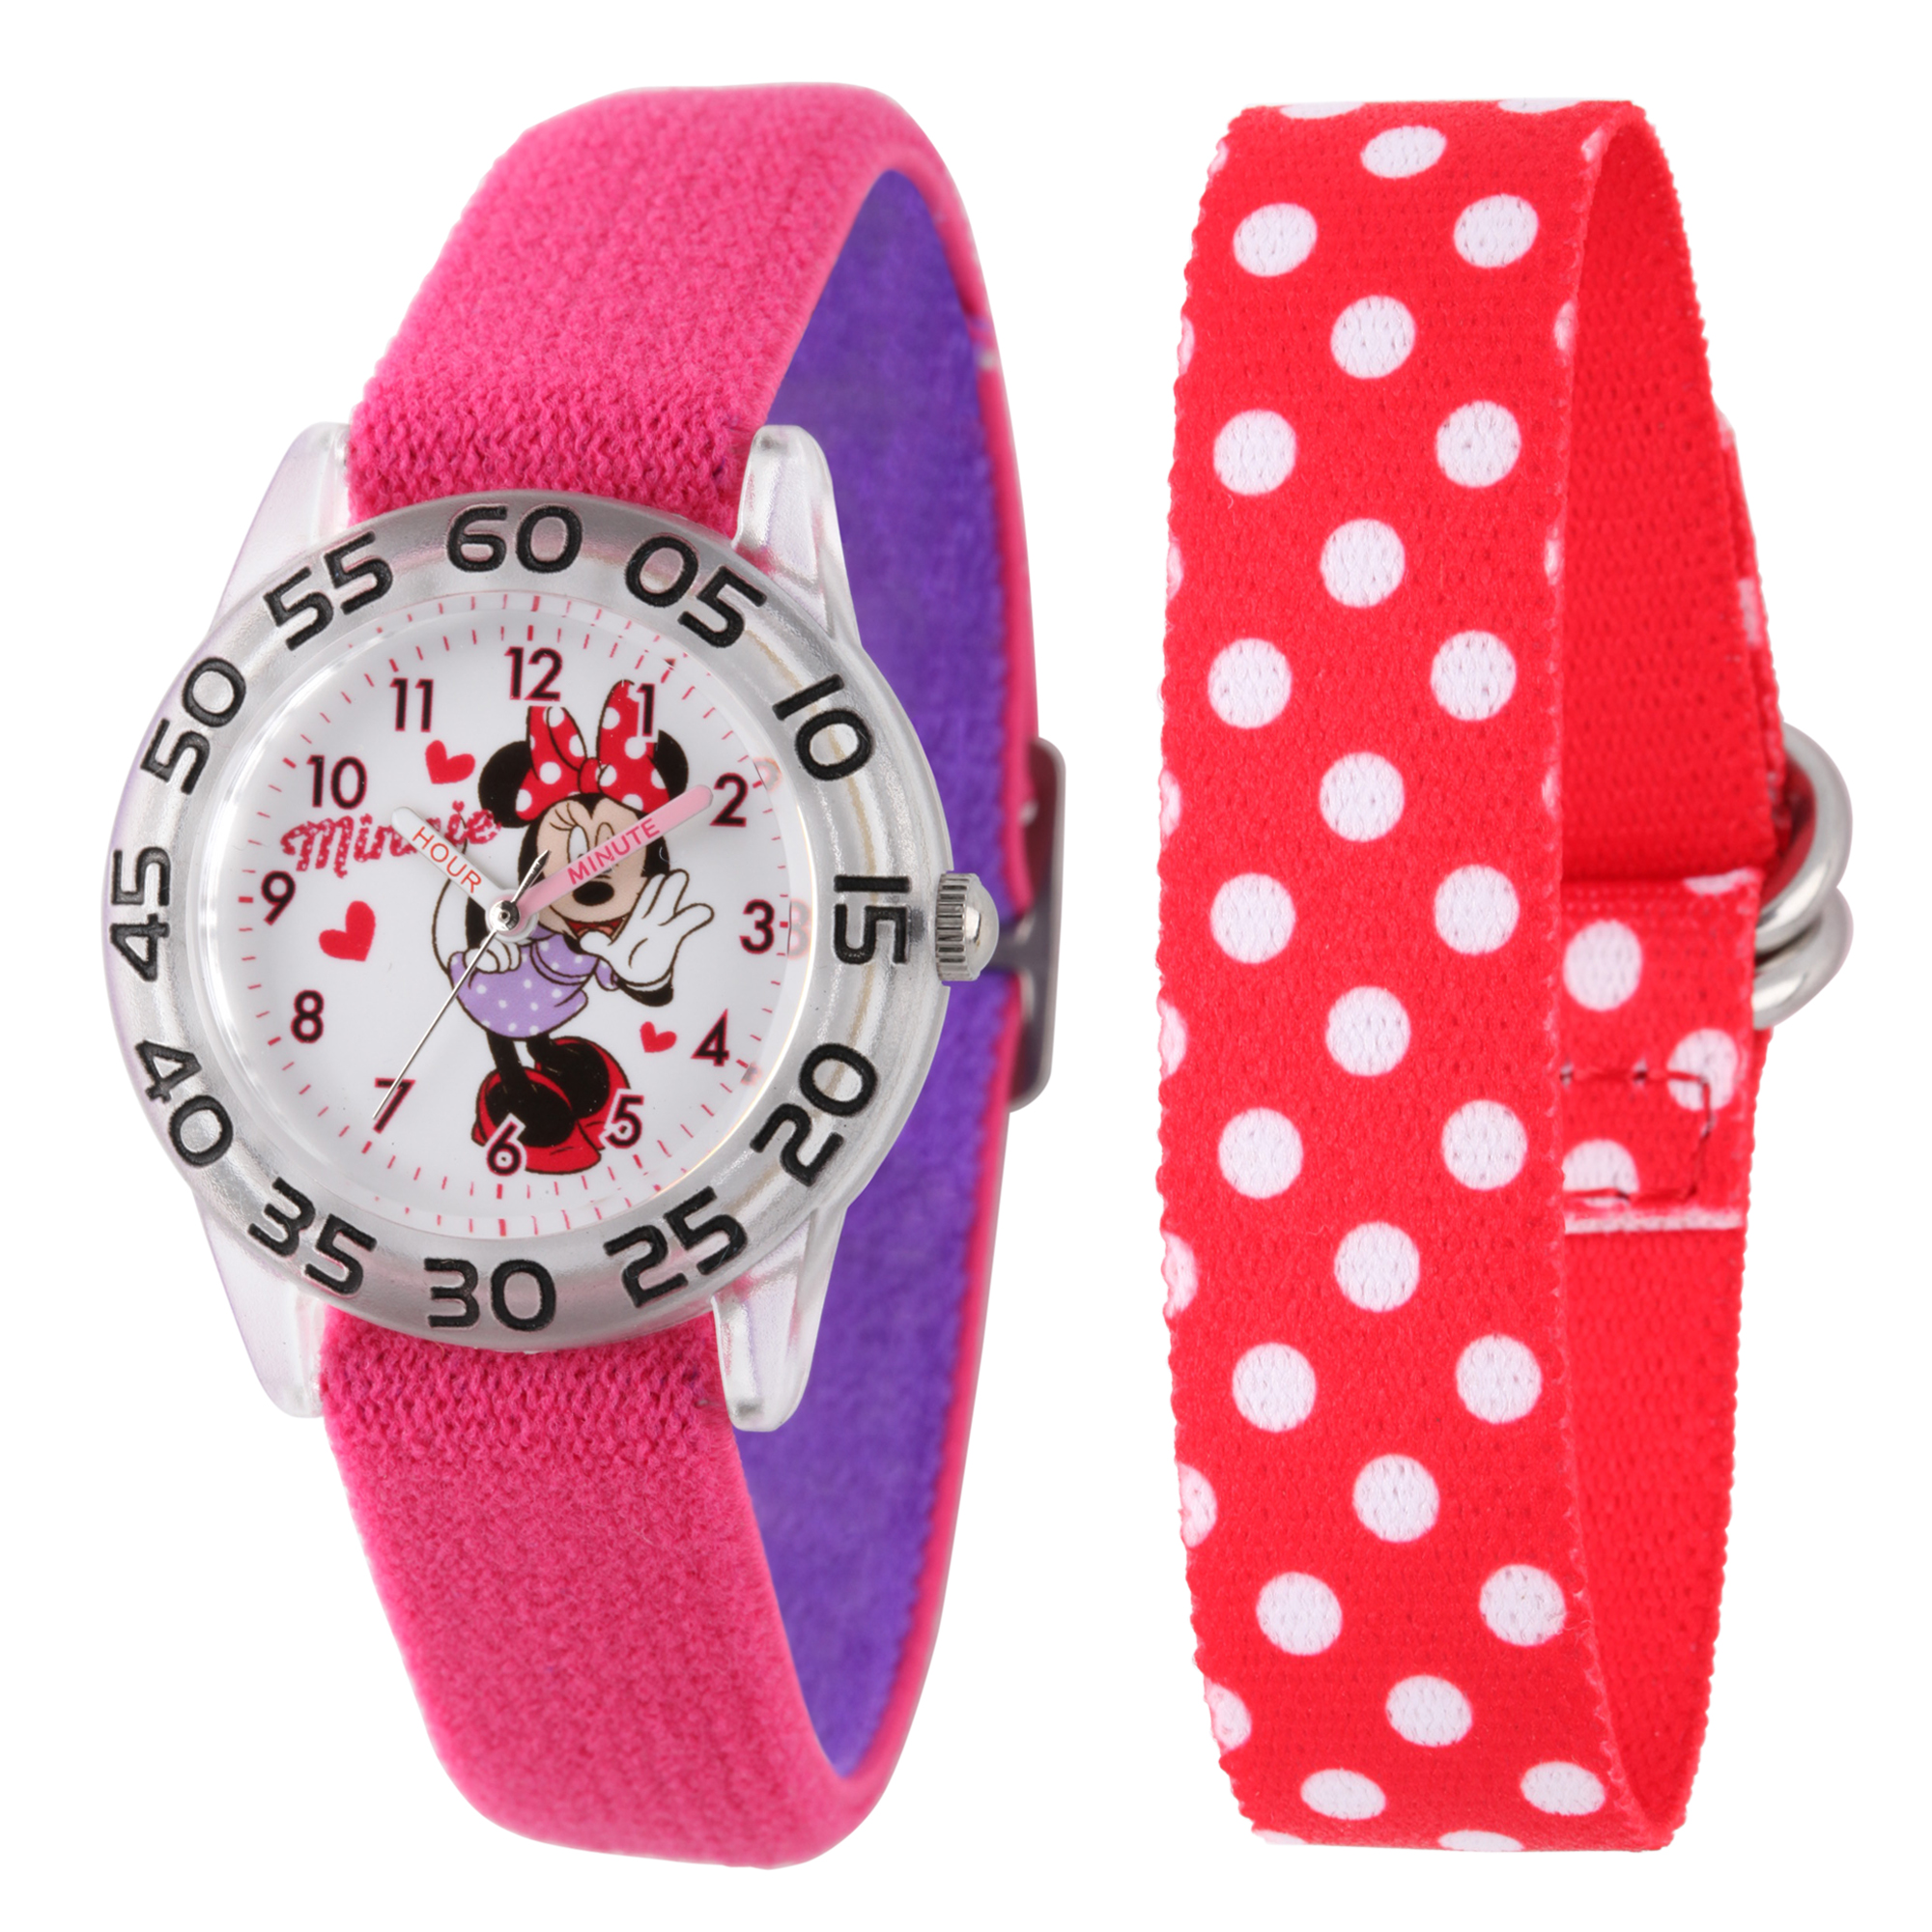 Minnie Mouse Girls' Plastic Time Teacher Interchangeable Strap Watch, Red Nylon Strap & Double Color Pink w/Purple Elastic Nylon Strap